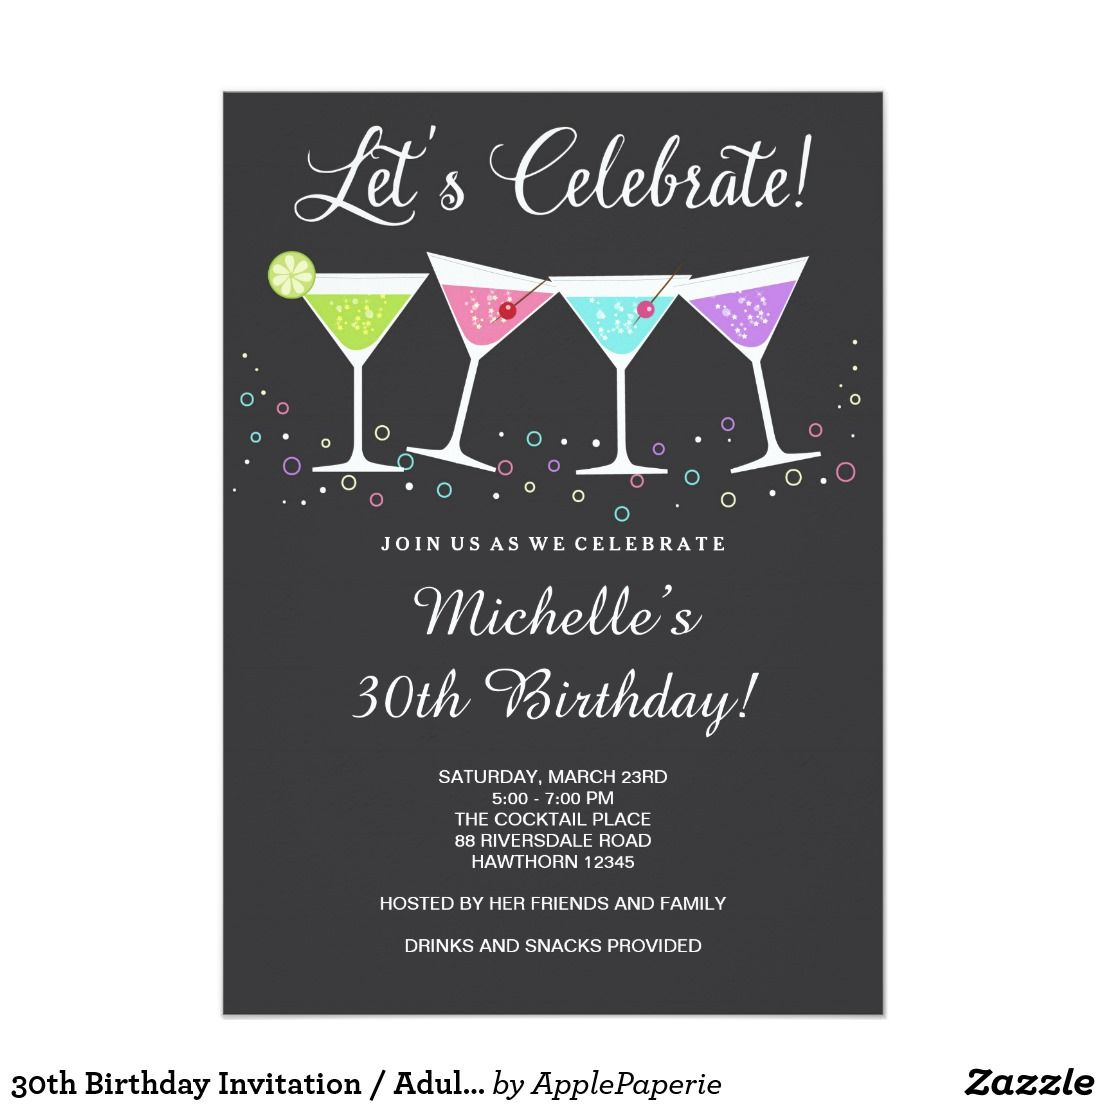 30th Birthday Invitation Adult Invite